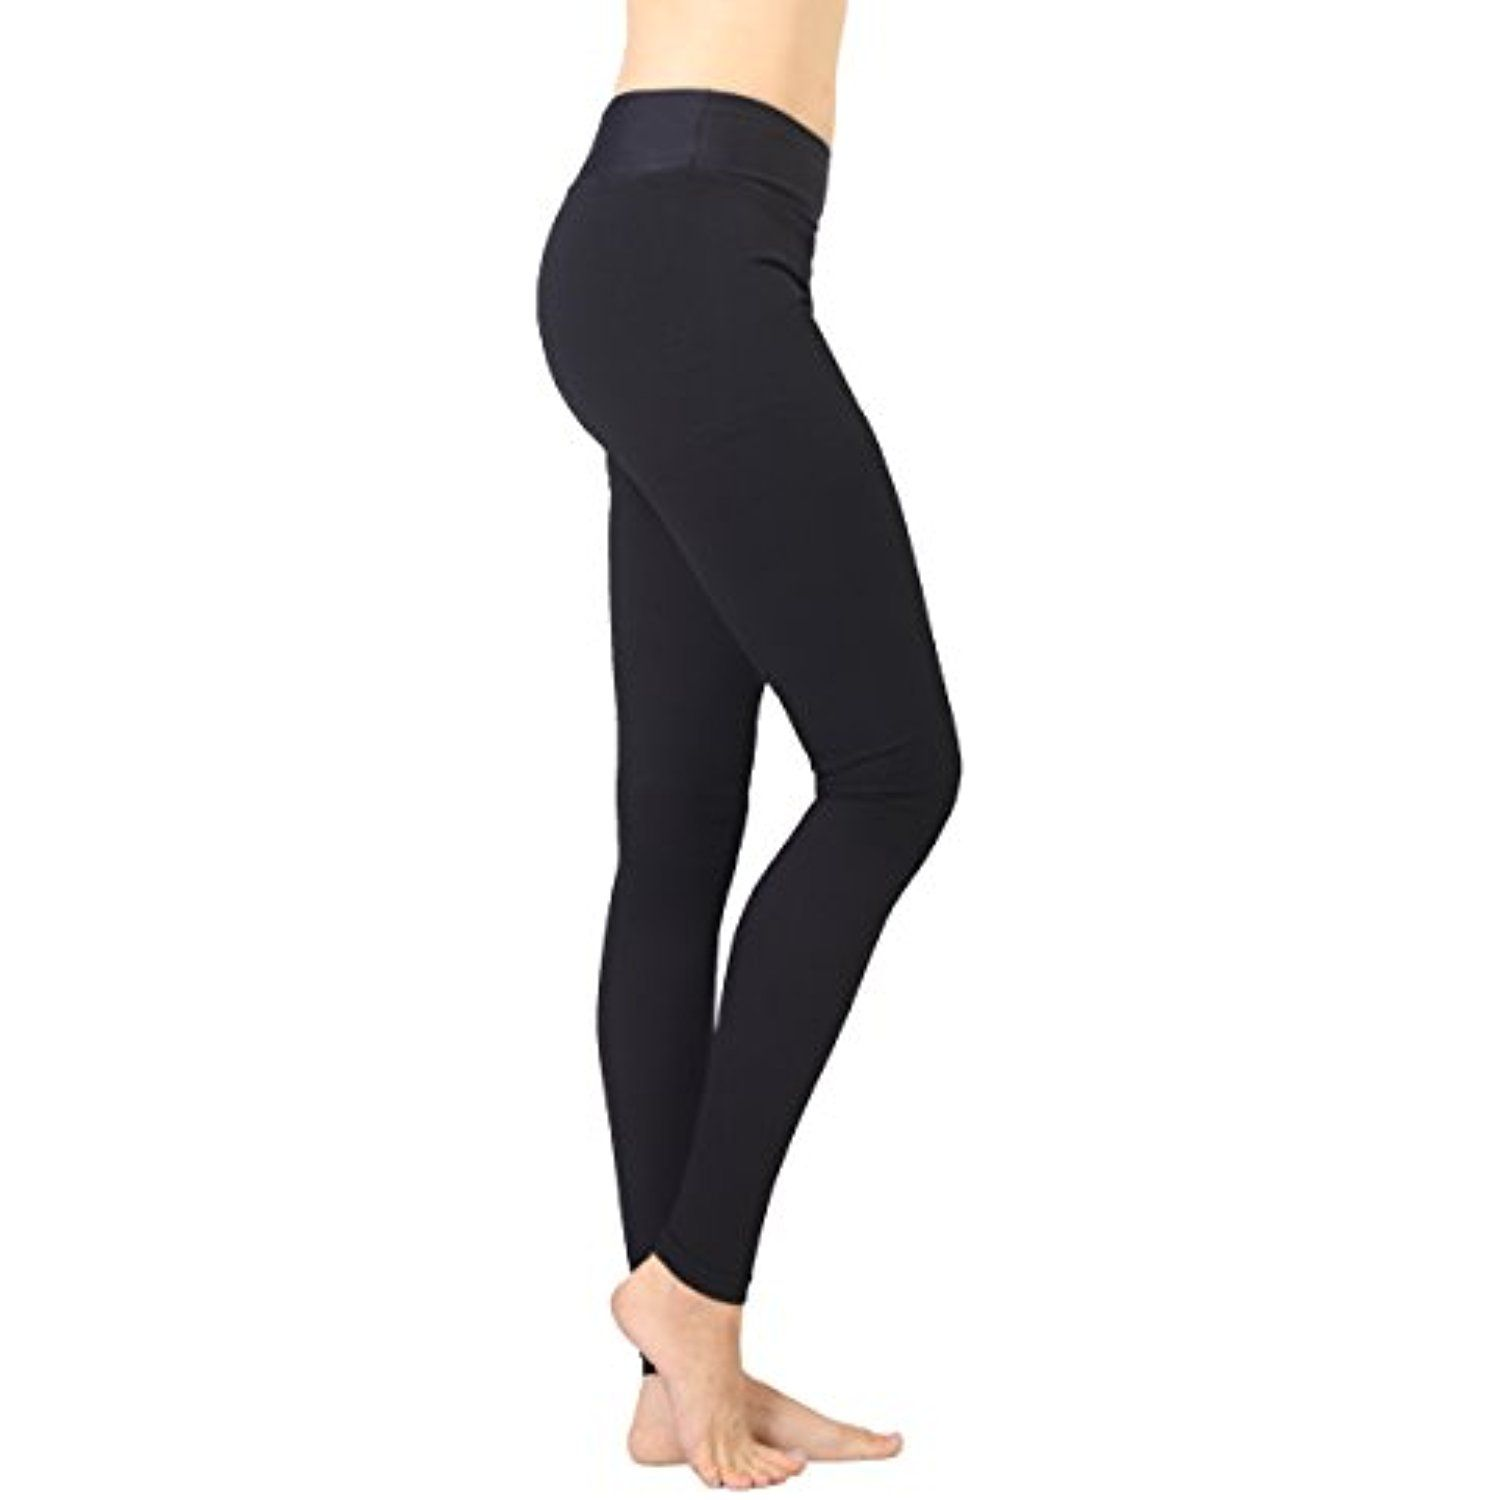 c6e5a38e4550d Terramed Sport Firm Footless Graduated Compression Microfiber Opaque  Leggings (20-30 mmHg)with Control Top (Large) * You can get additional  details at the ...